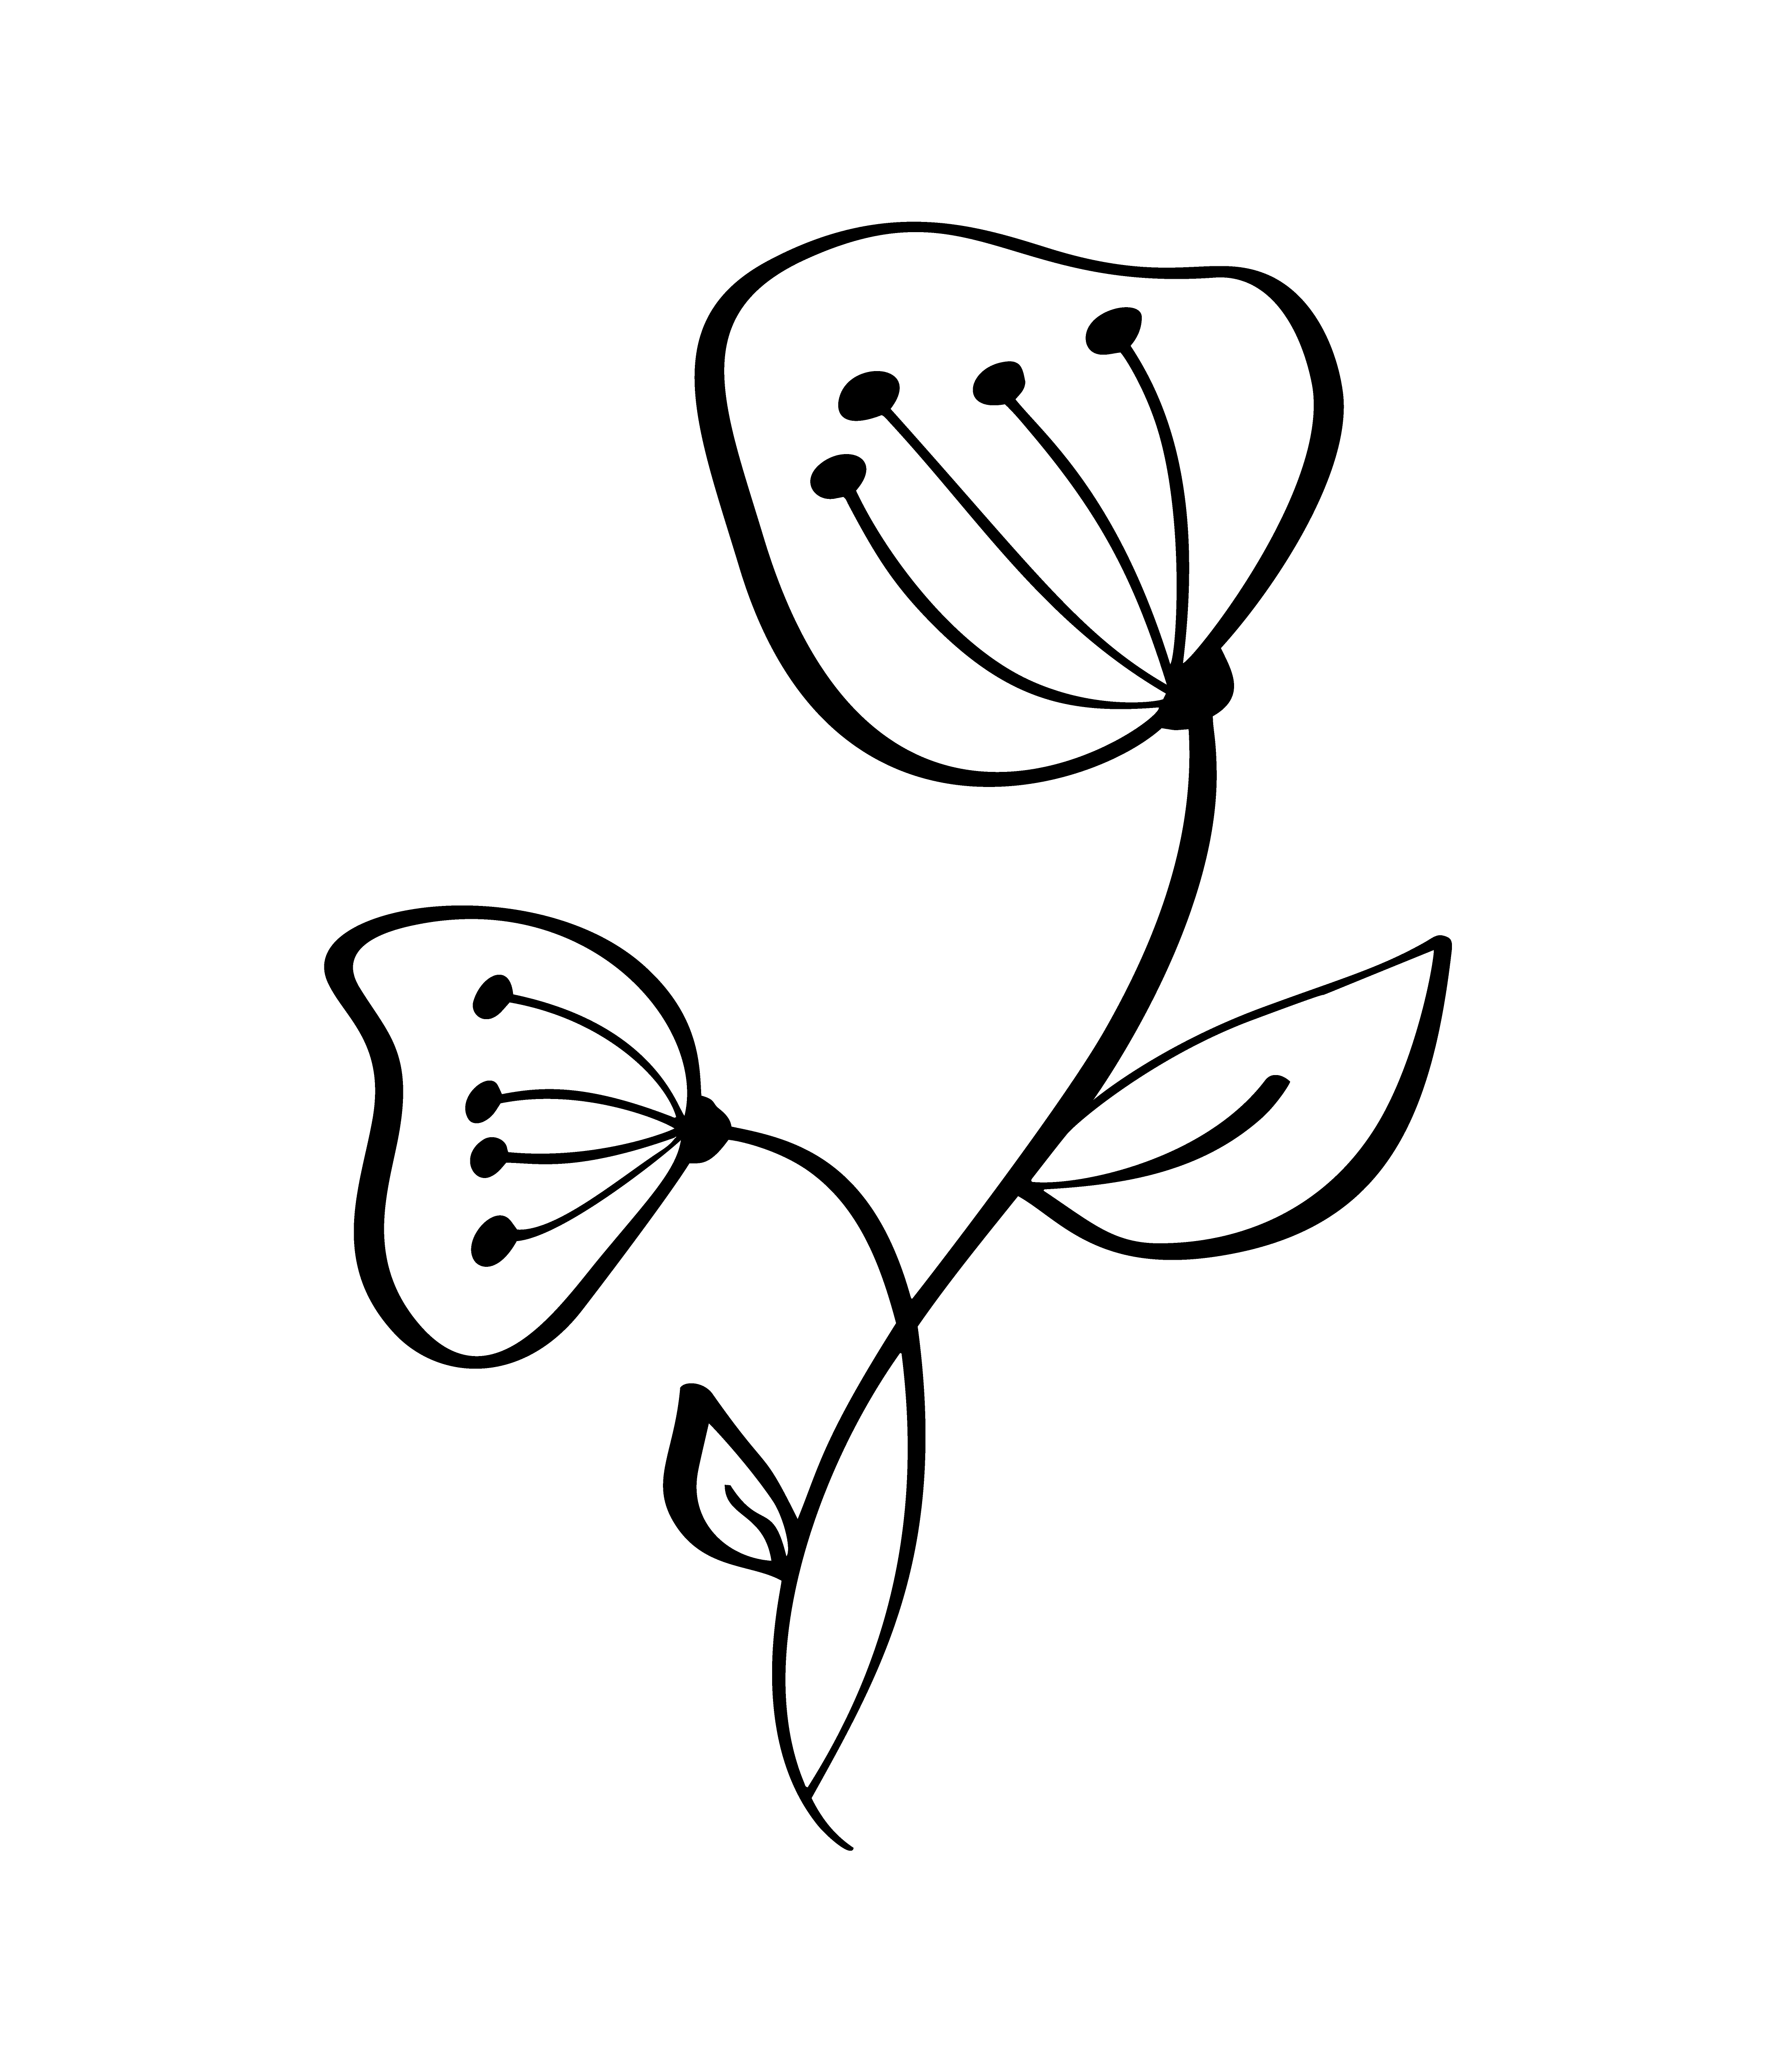 Hand Drawn Modern Flowers Drawing And Sketch Floral With